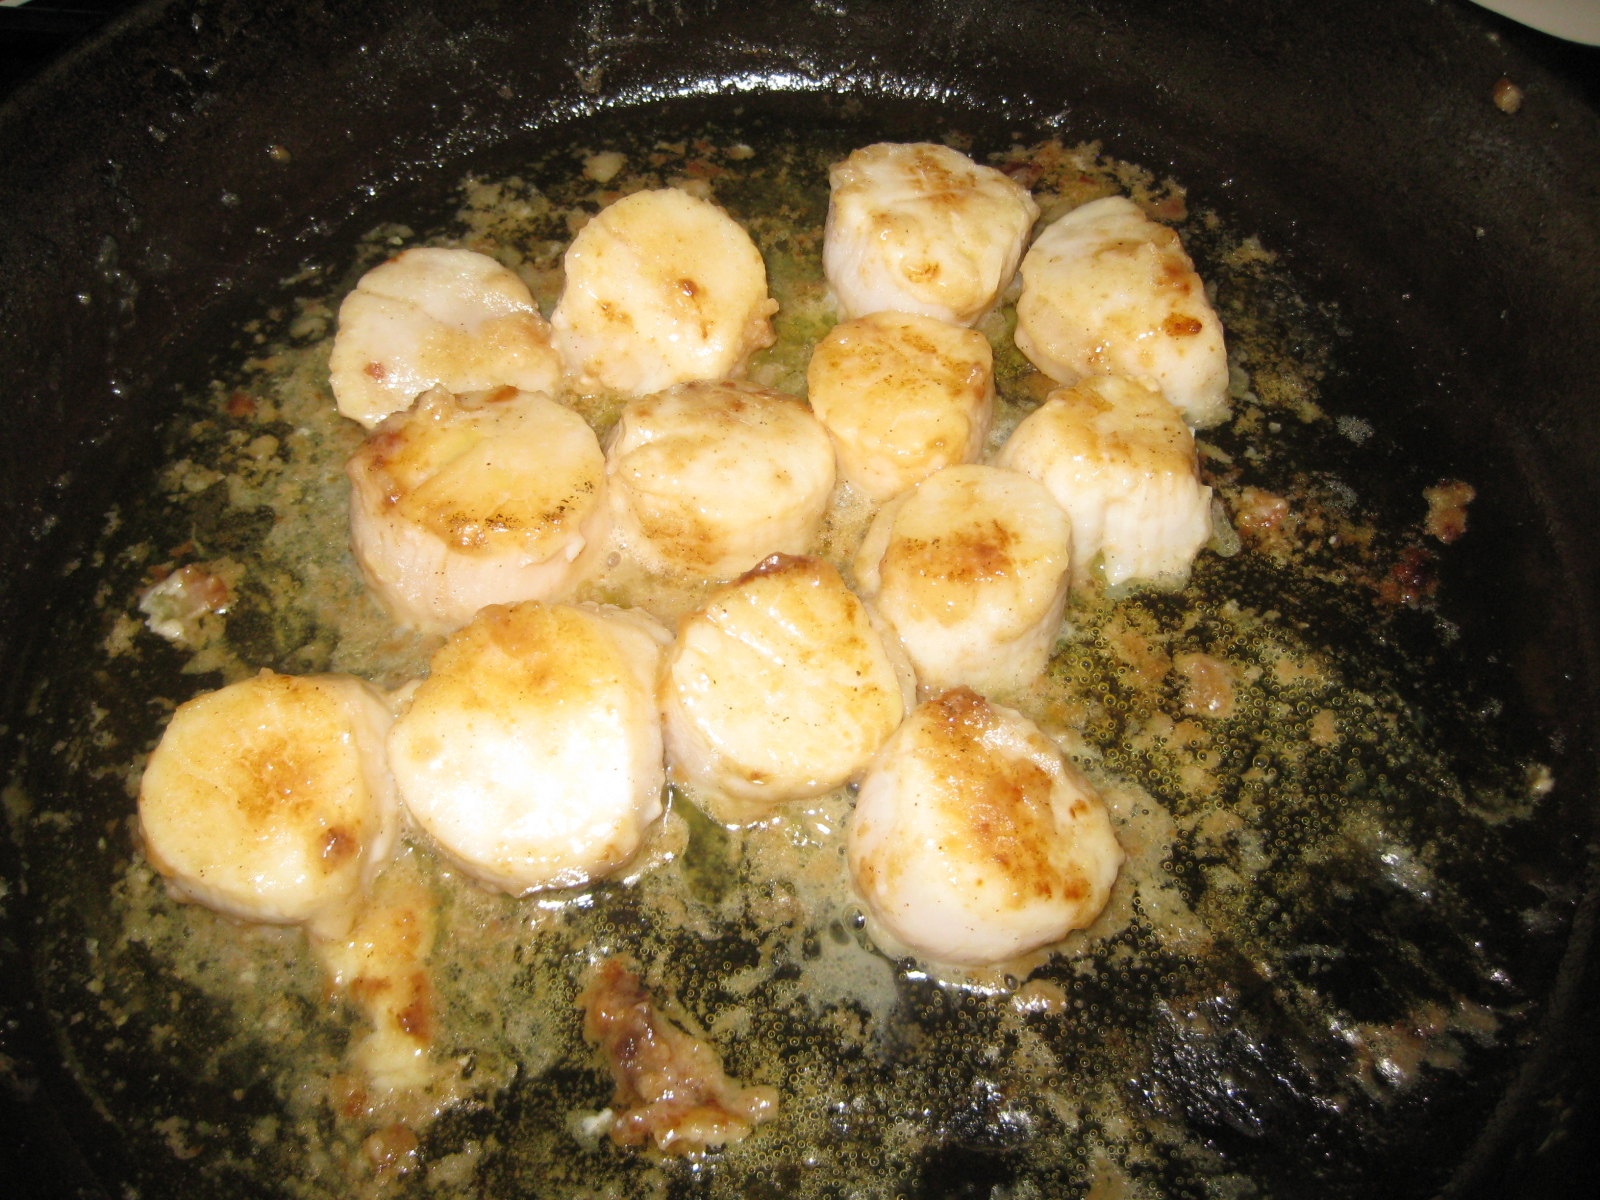 Scallop Saute in Cast Iron Skillet